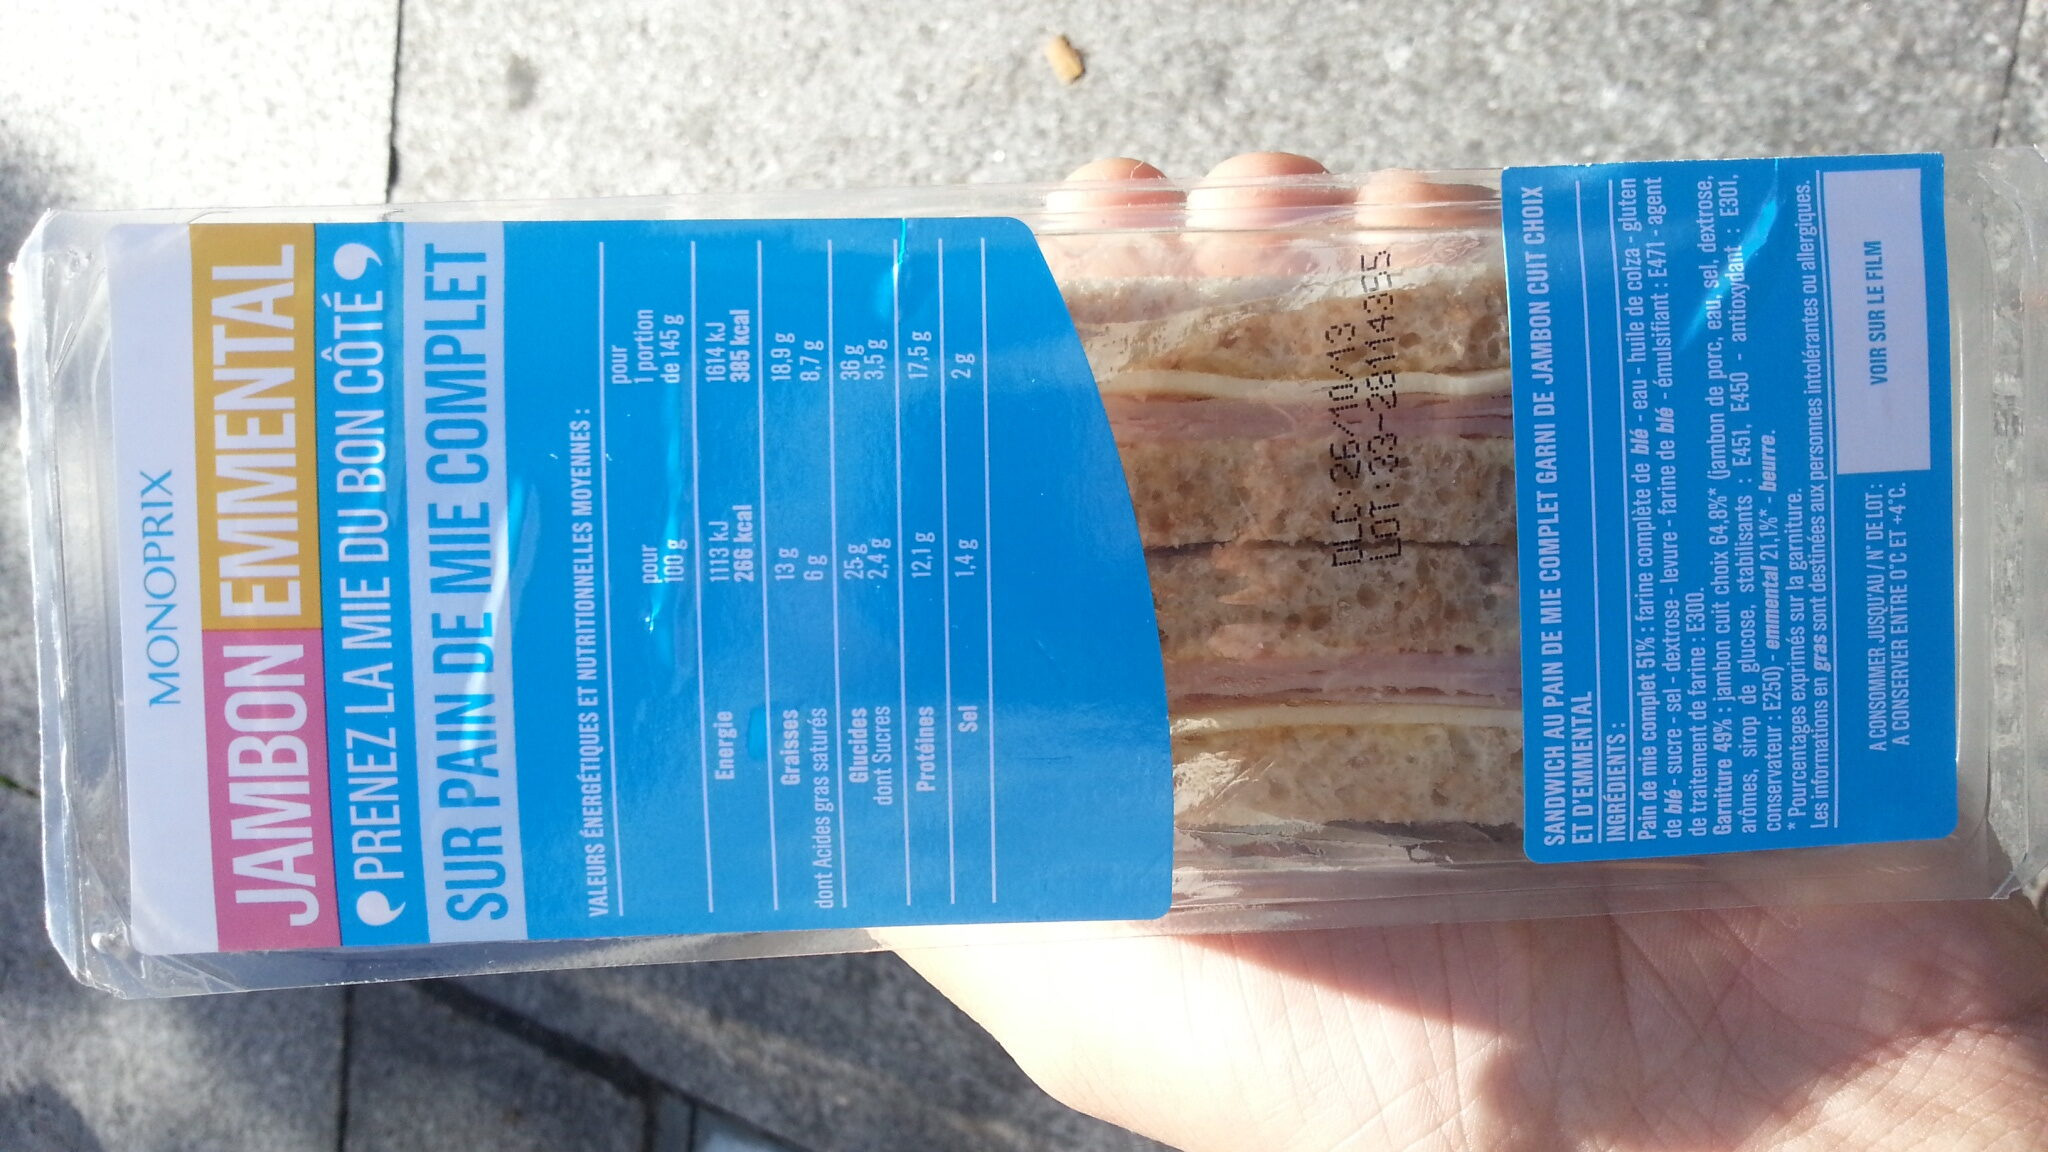 Jambon emmental - Nutrition facts